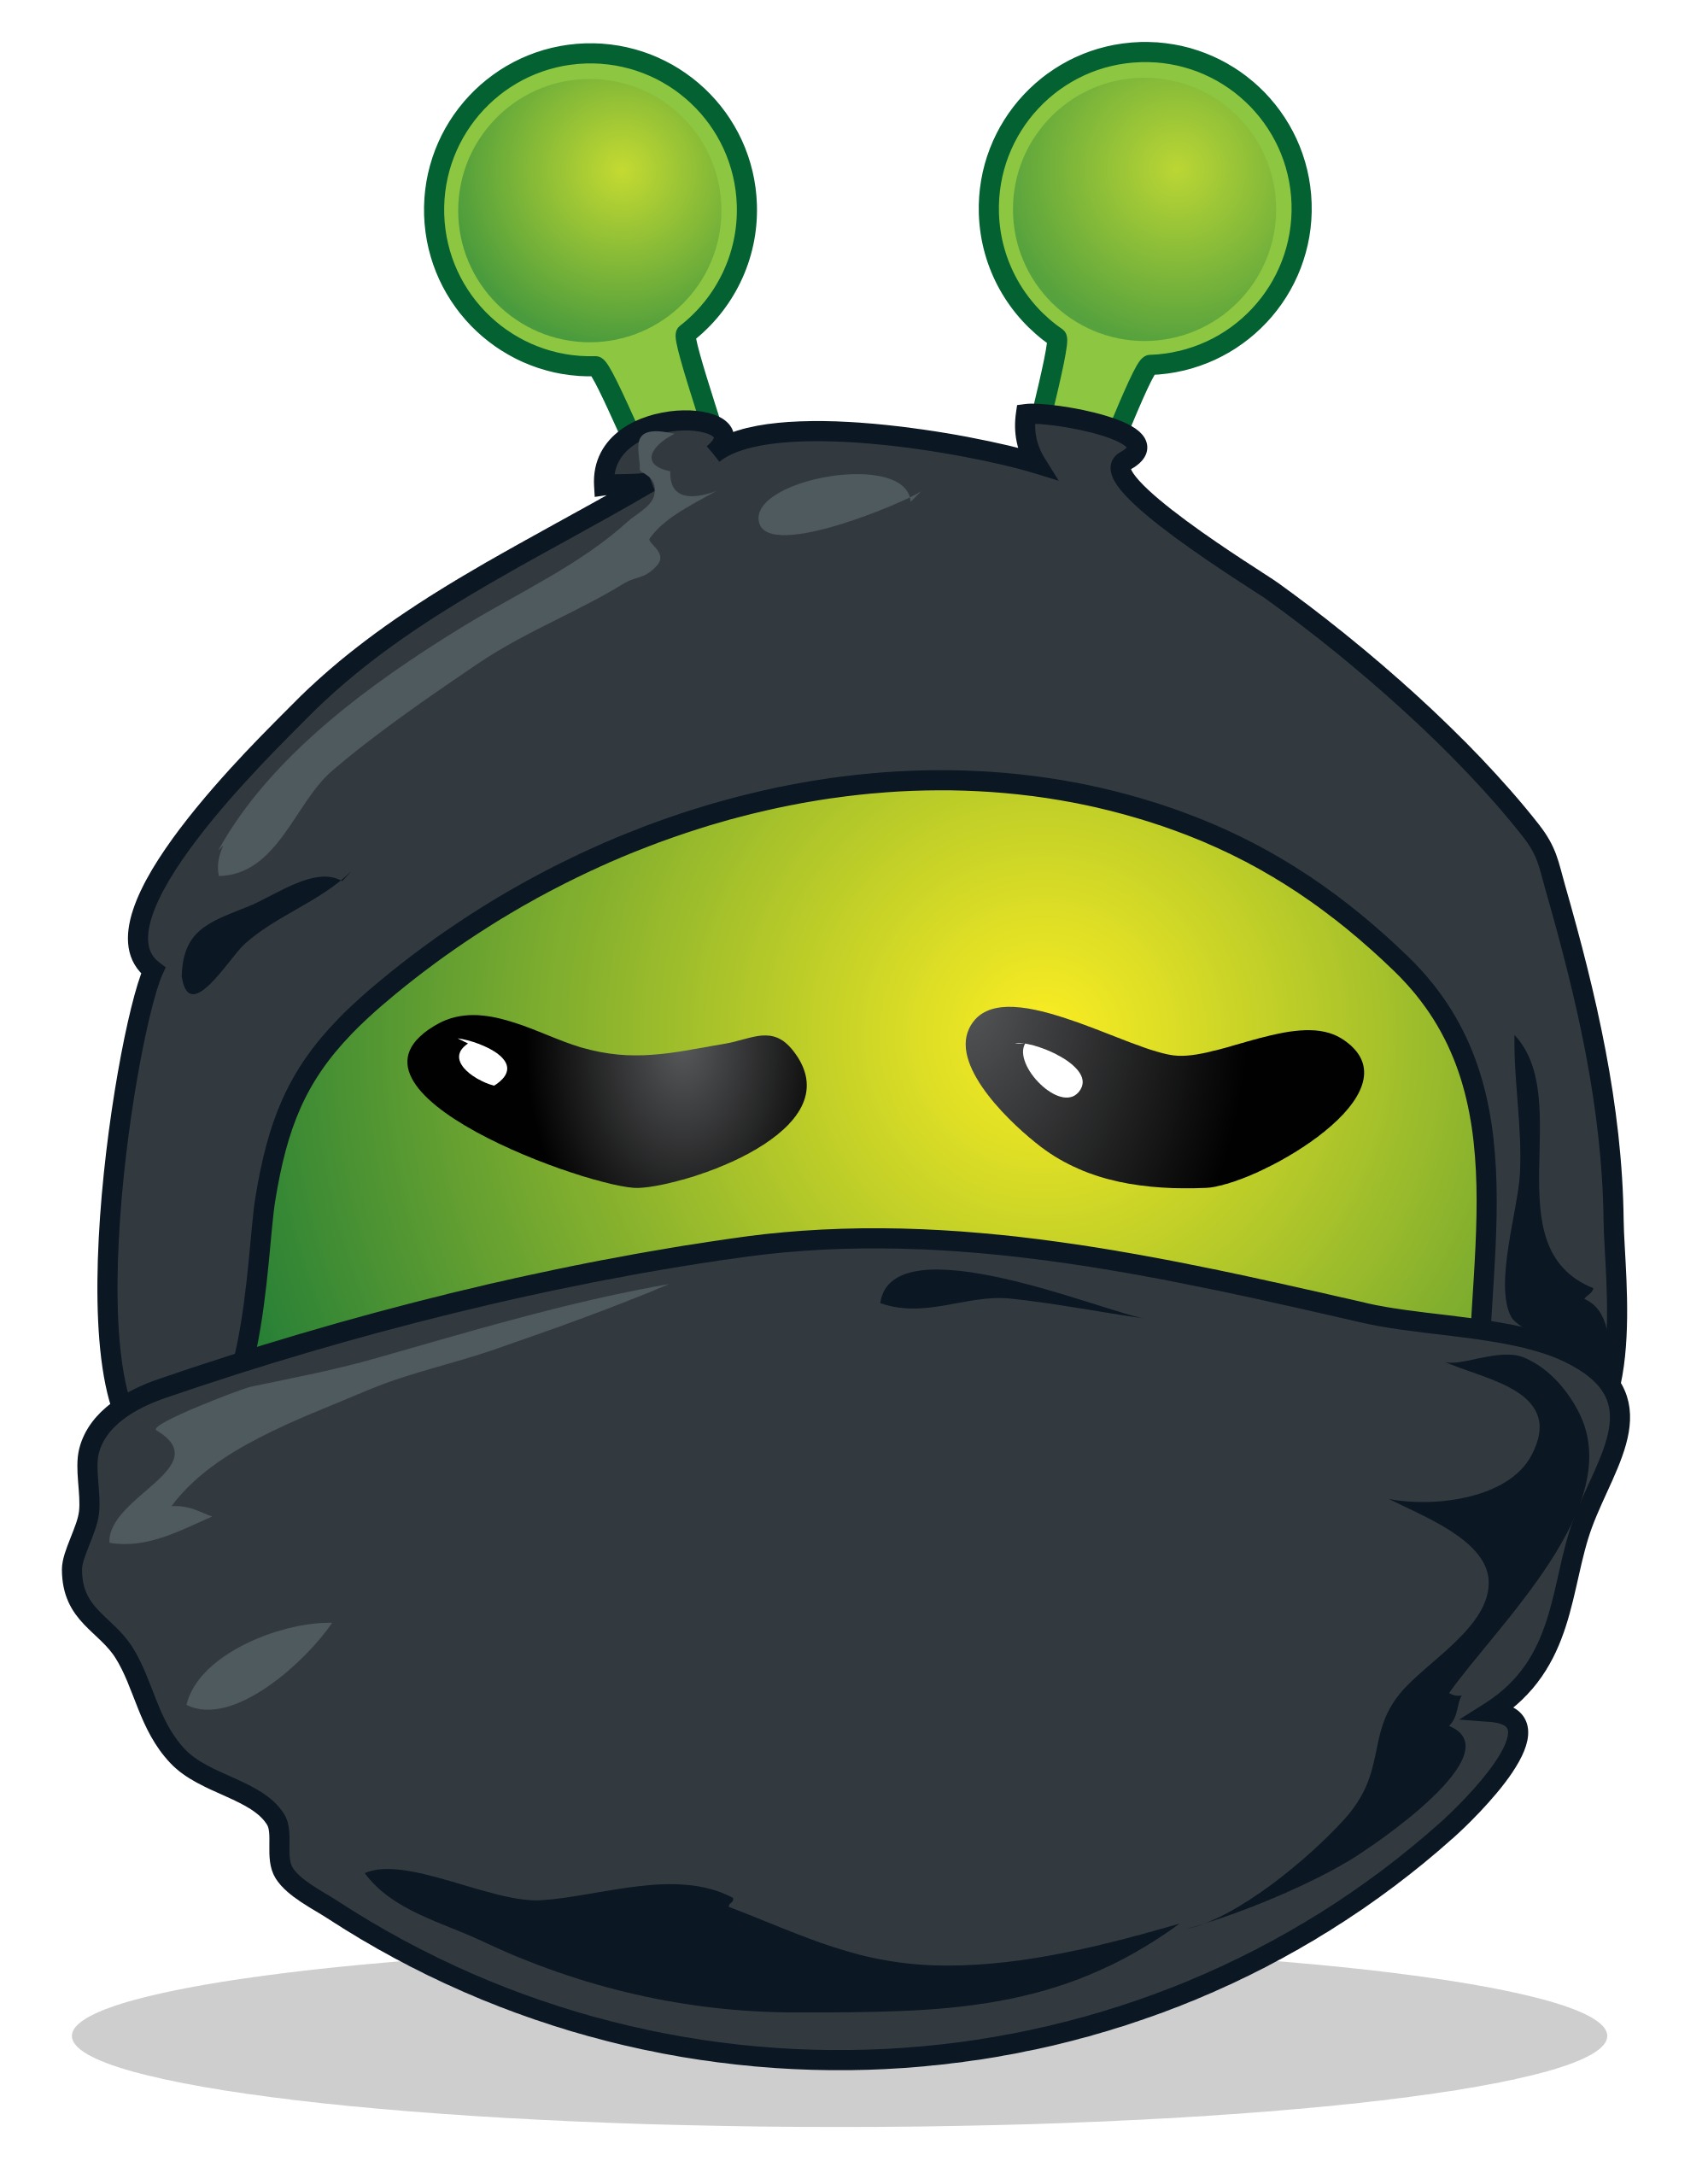 Ninja svg #2, Download drawings